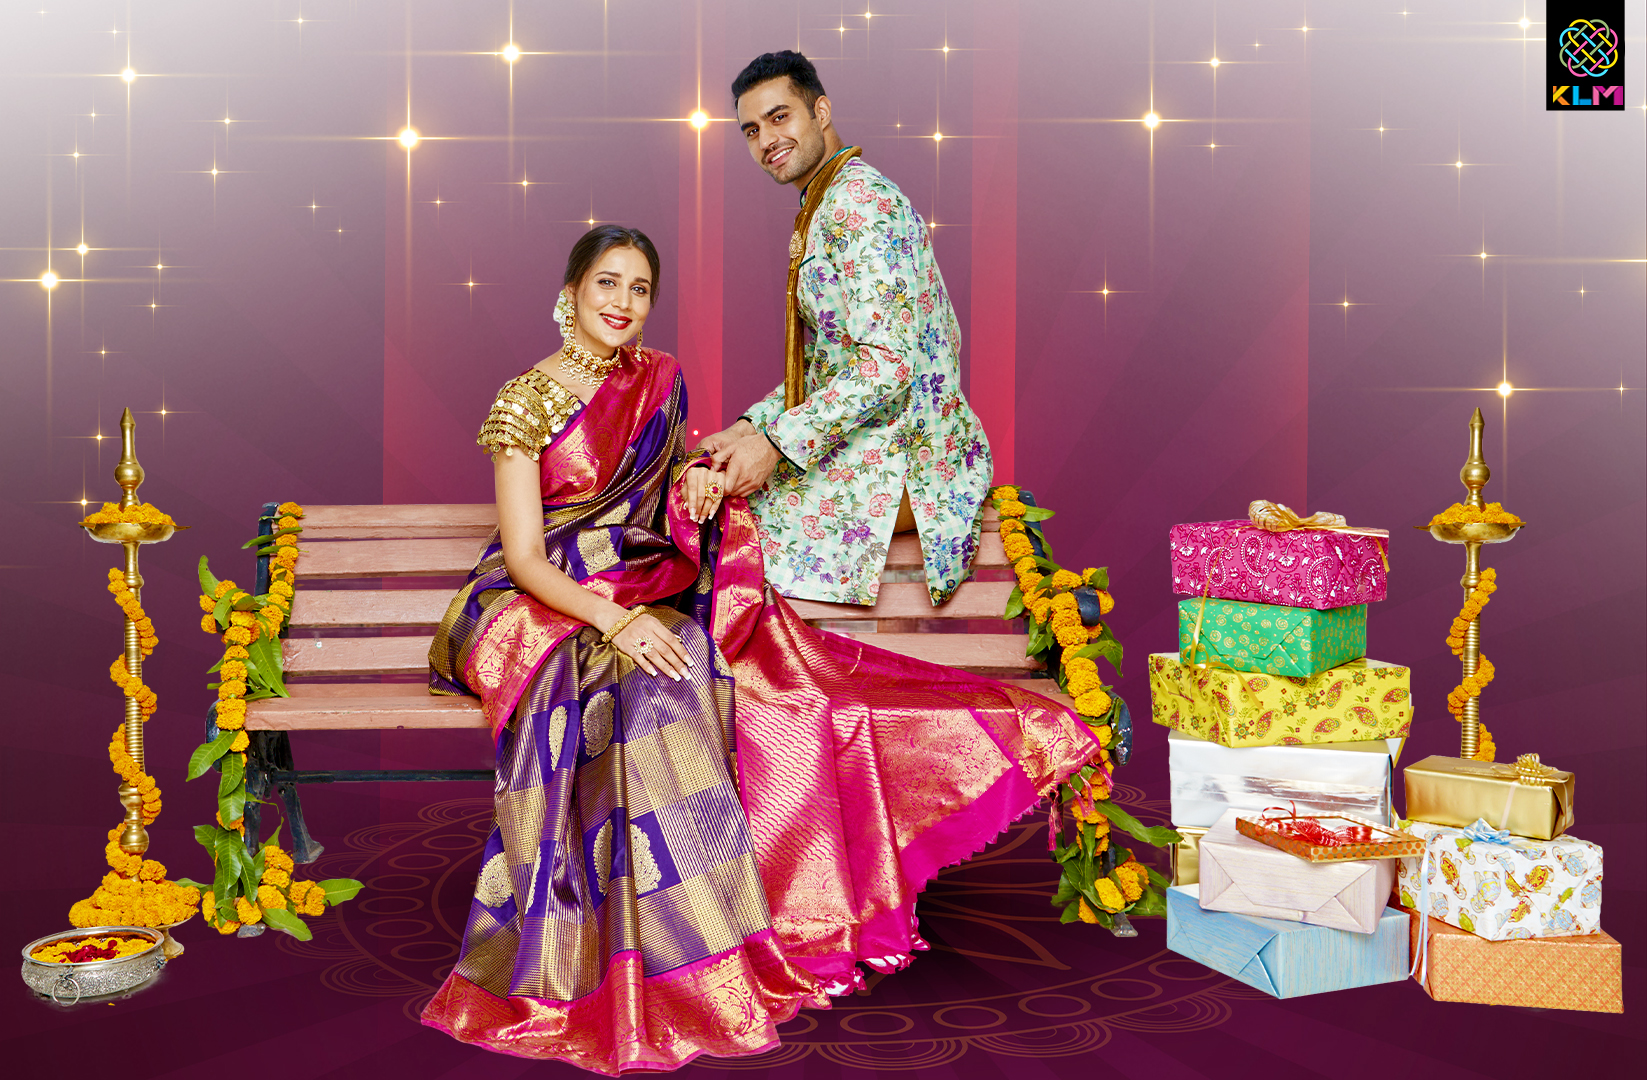 Best Family Shopping Mall in Hyderabad